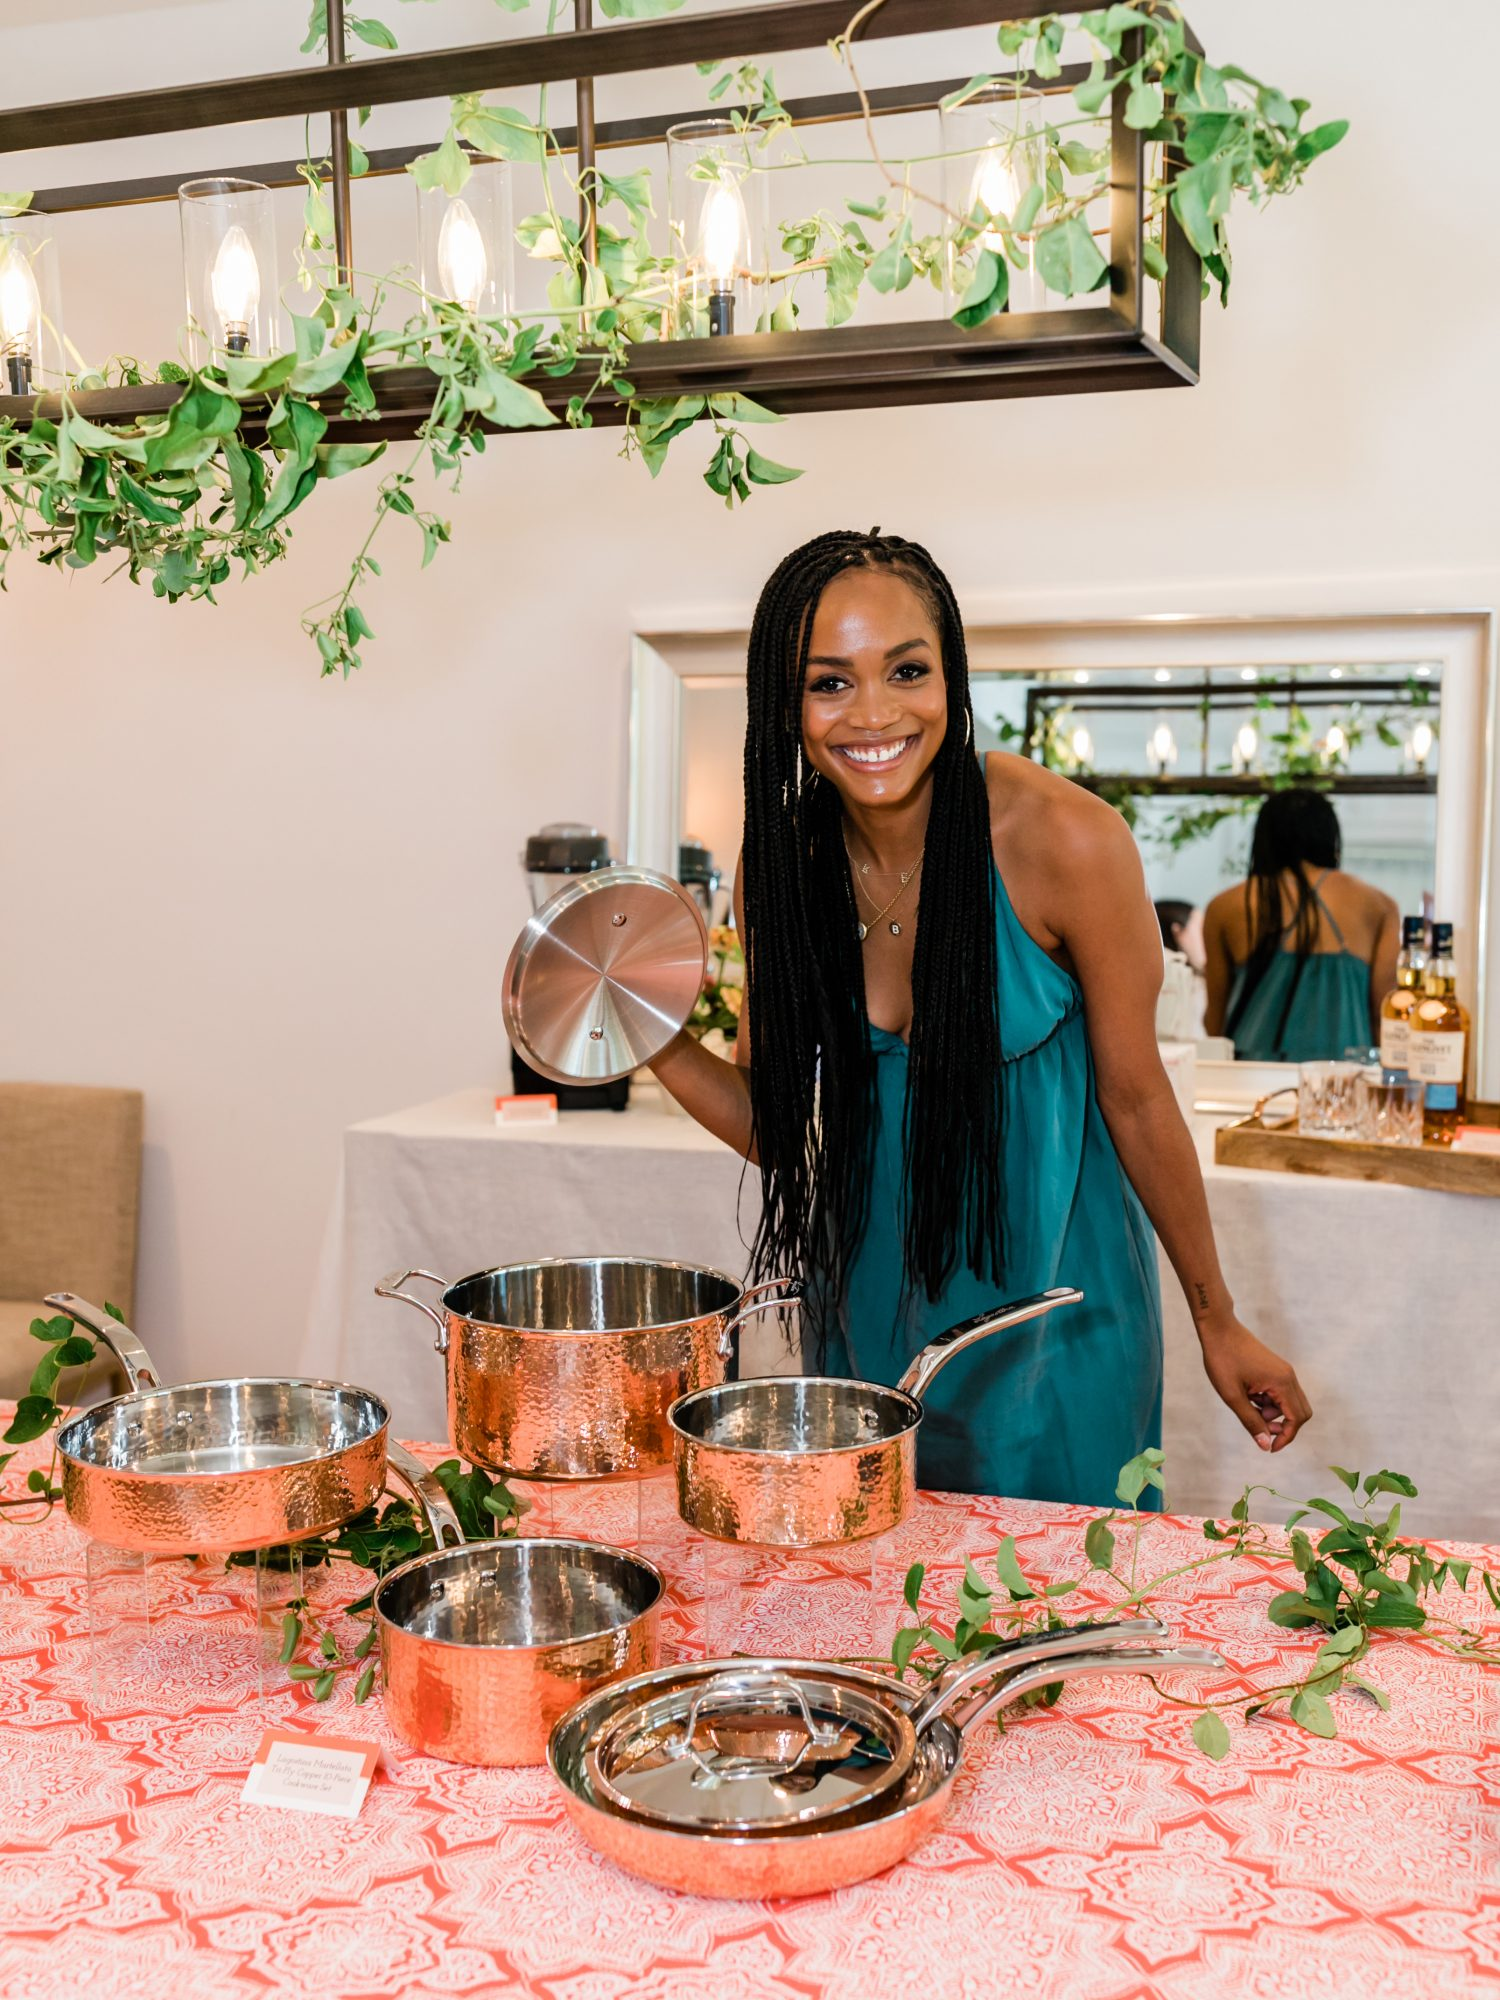 Rachel Lindsay at The Knot event